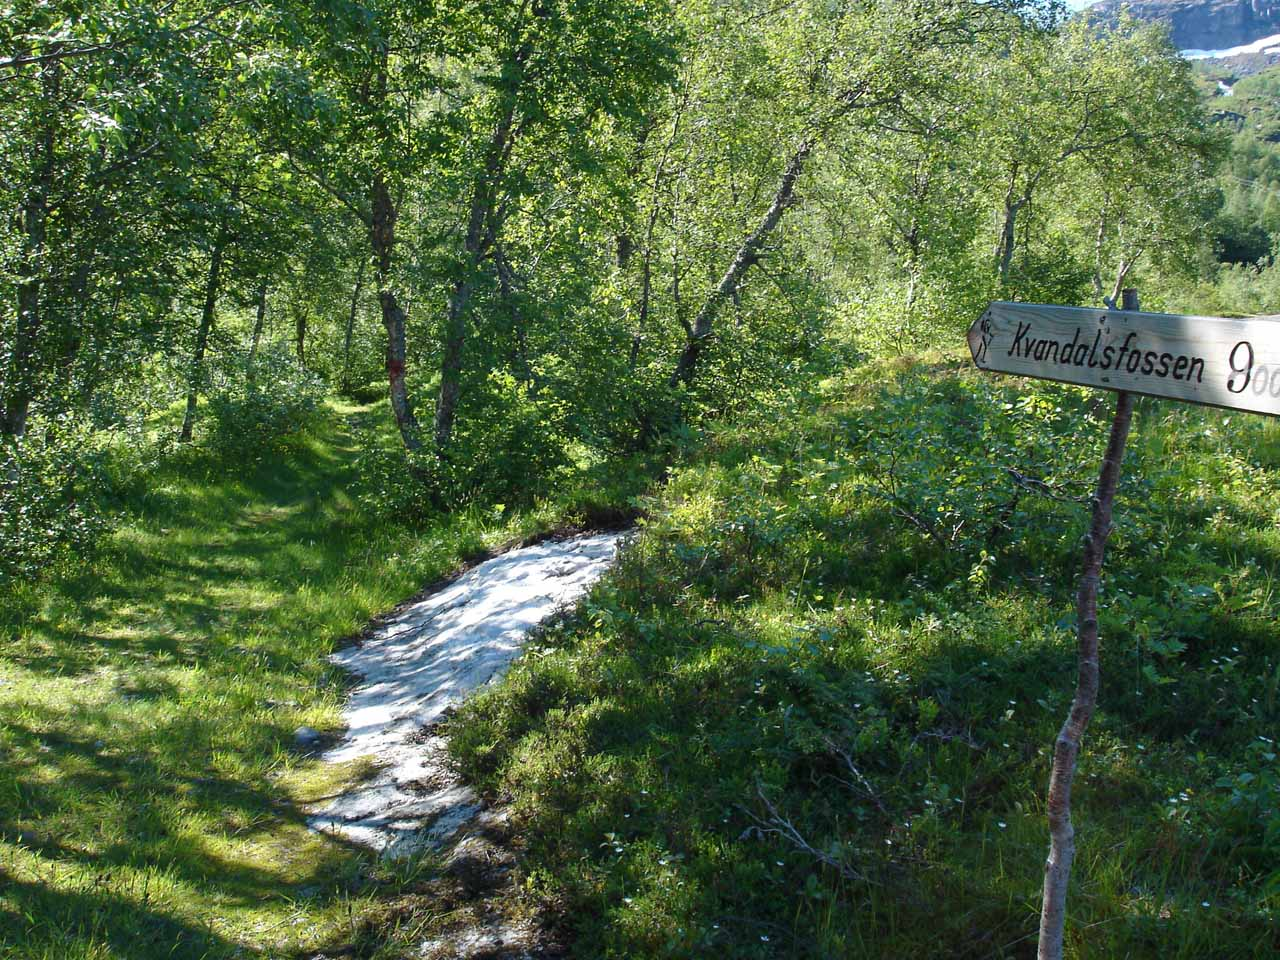 The Kvanddalsfossen sign at the trailhead